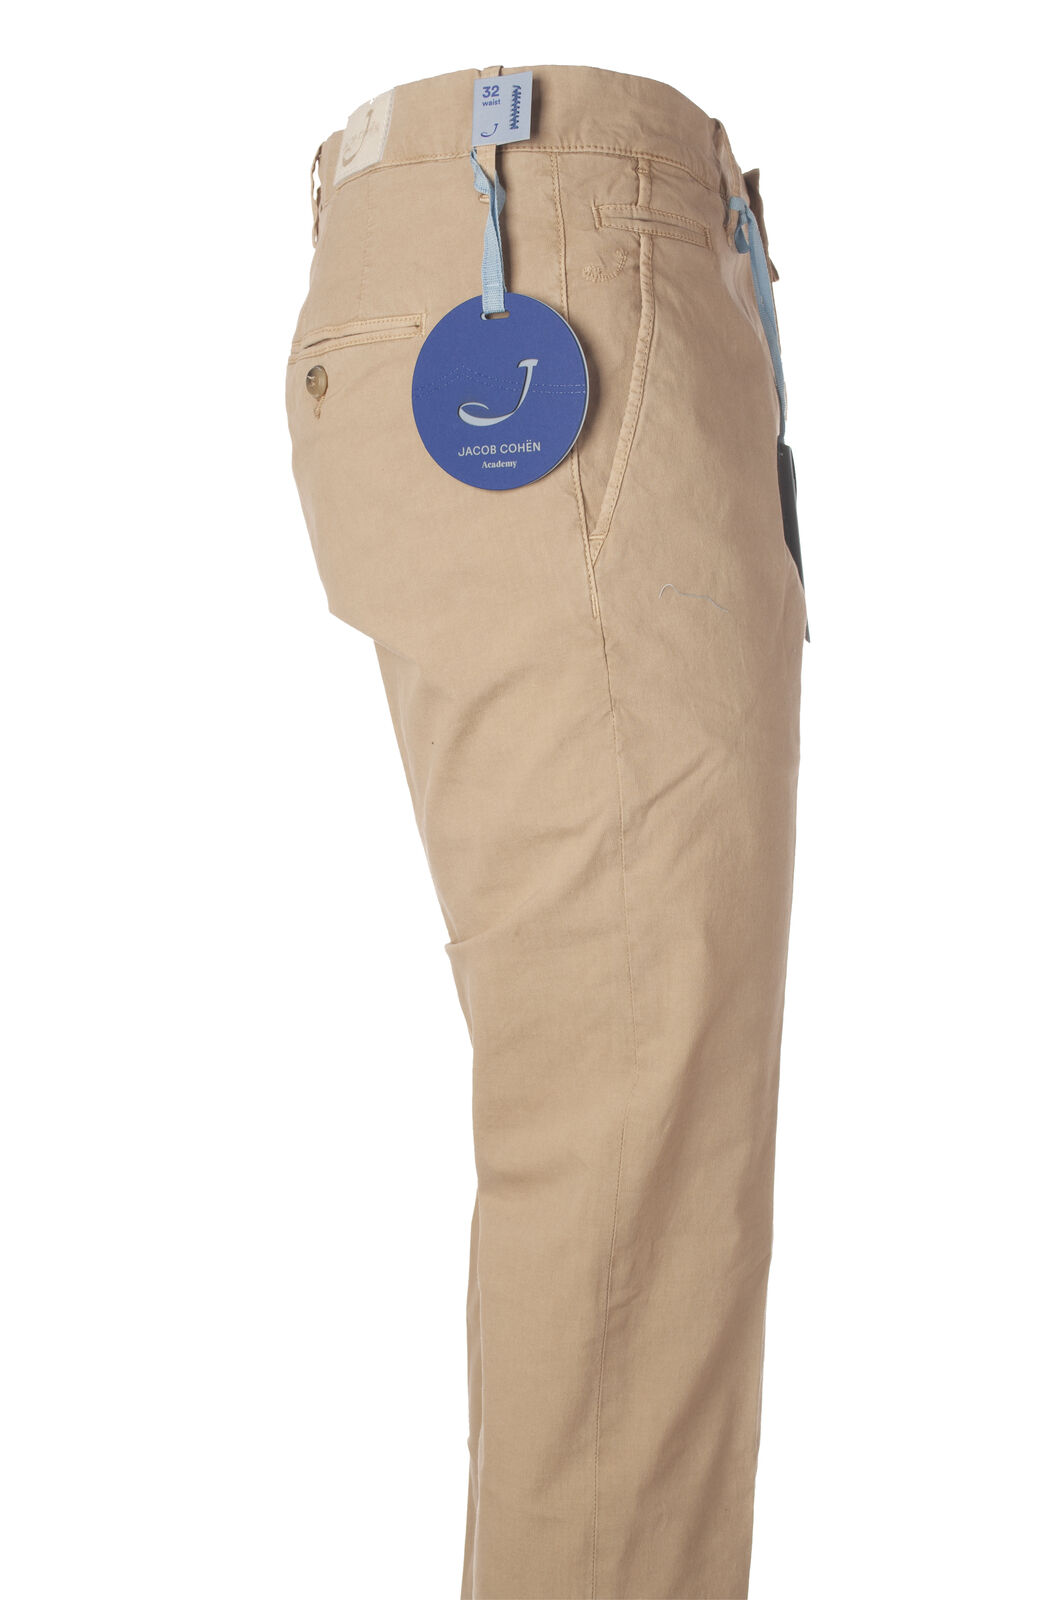 Jacob Cohen - Pants-Pants - Man - Beige - 5981012C190631